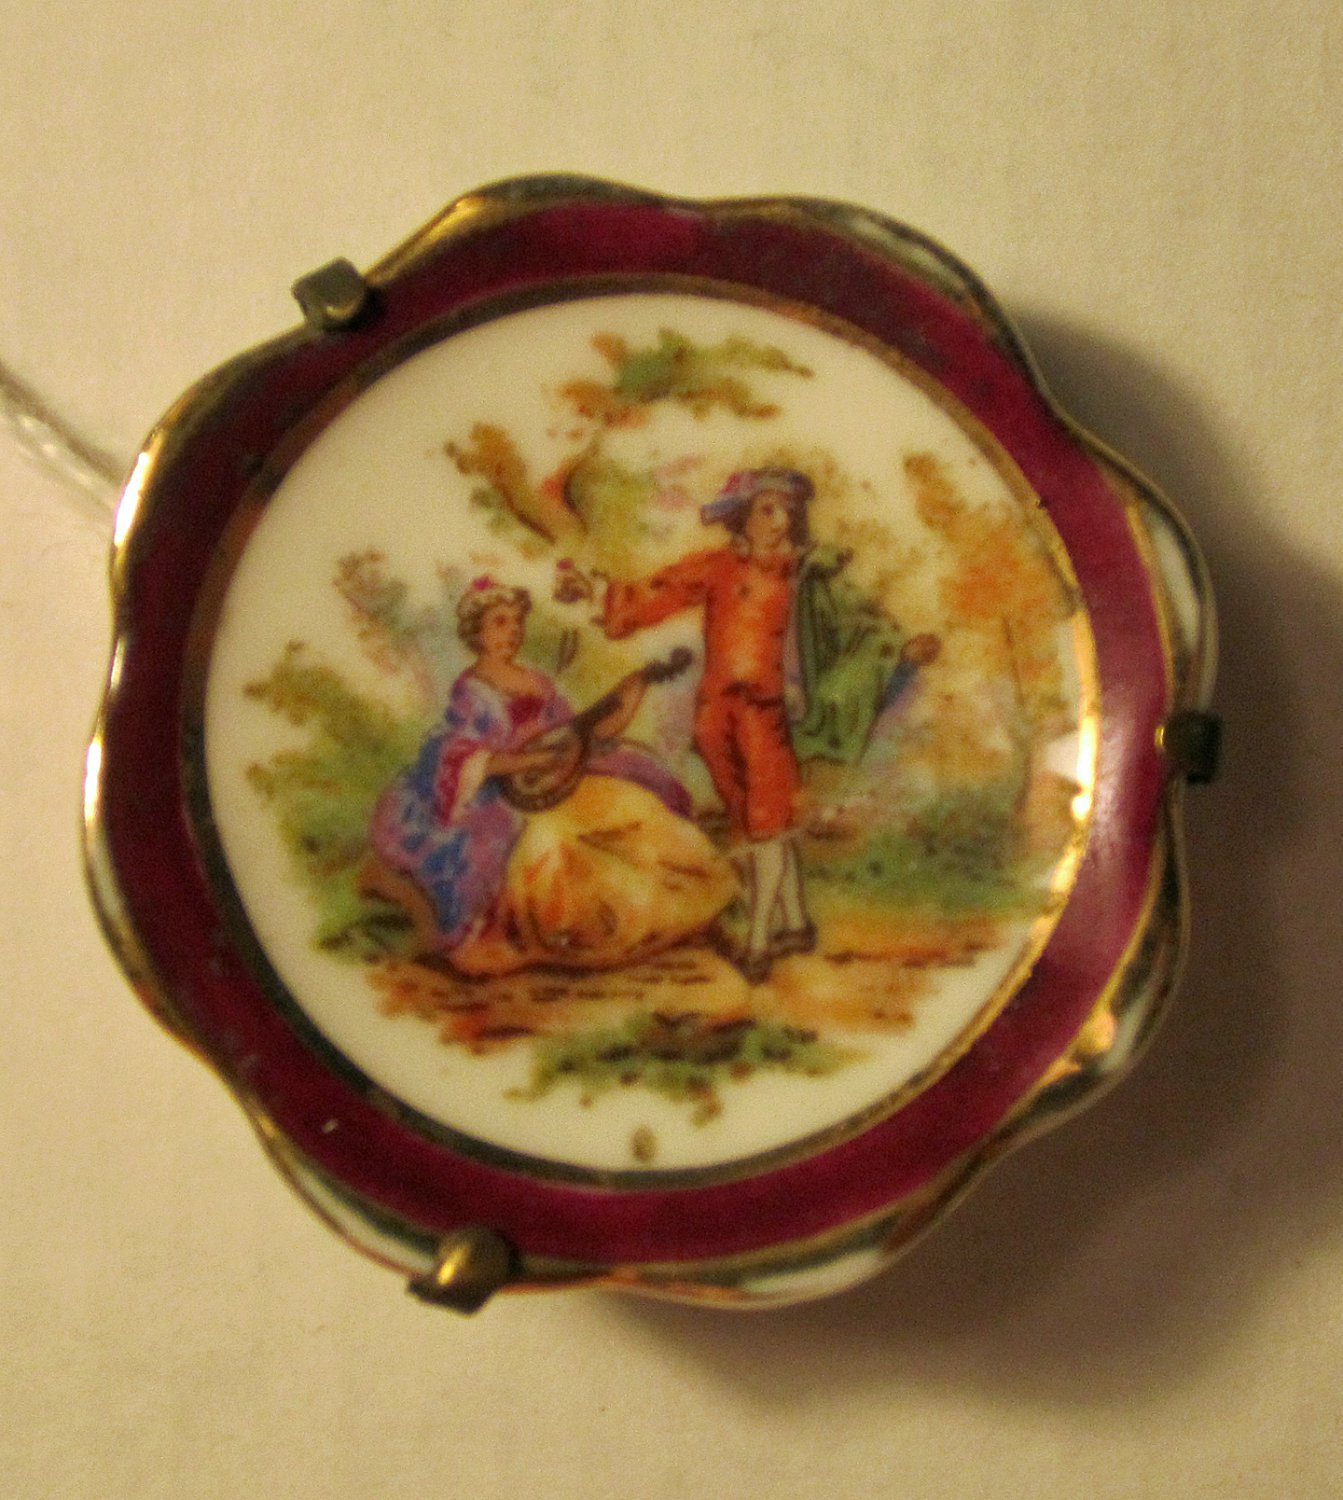 Antique Brooch by Limoges of France Lady Serenading Man